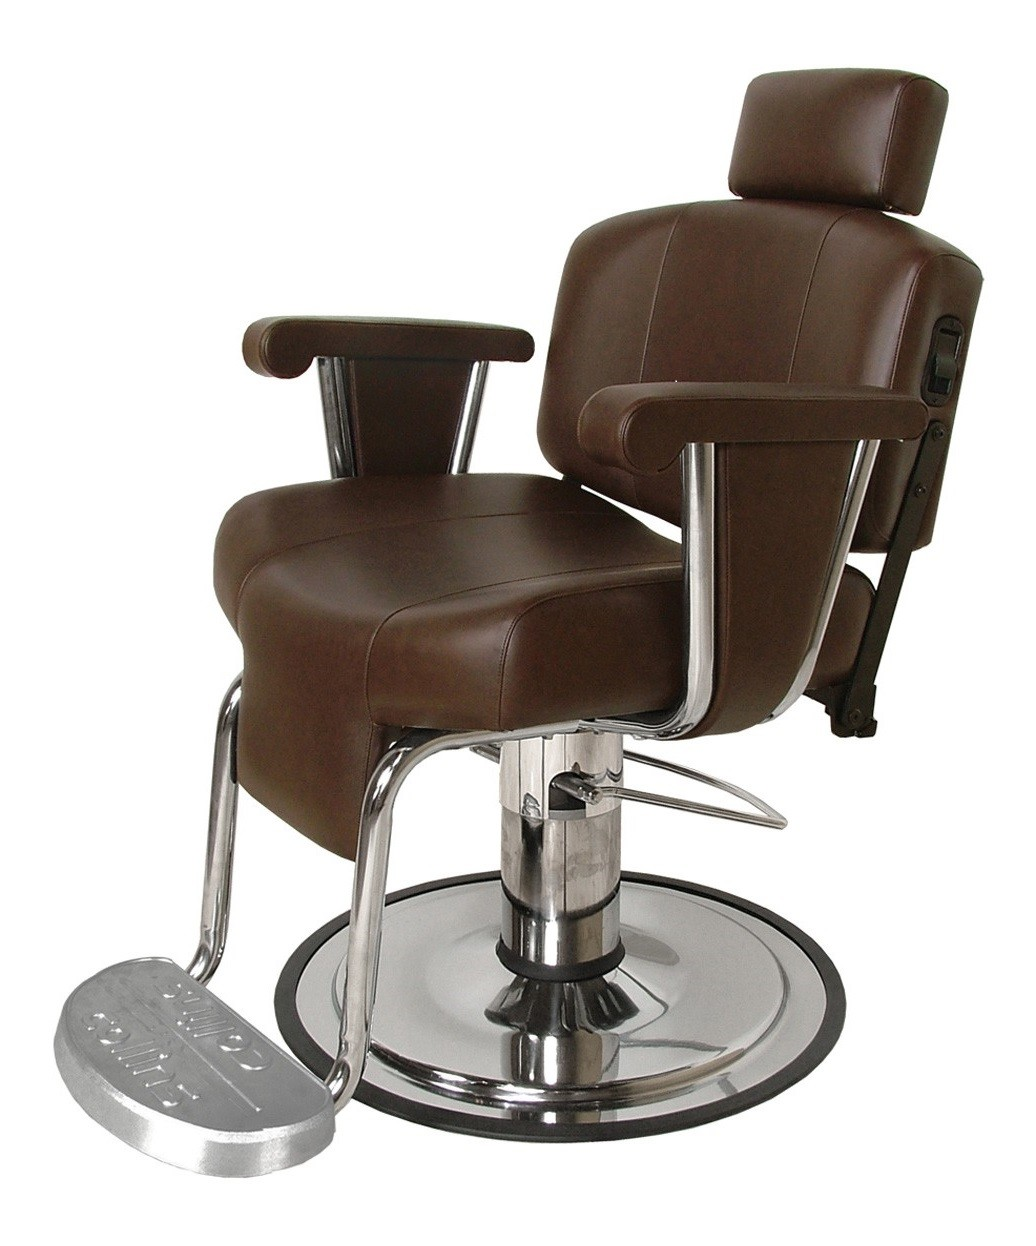 Collins 9010 Continental III Barber Chair